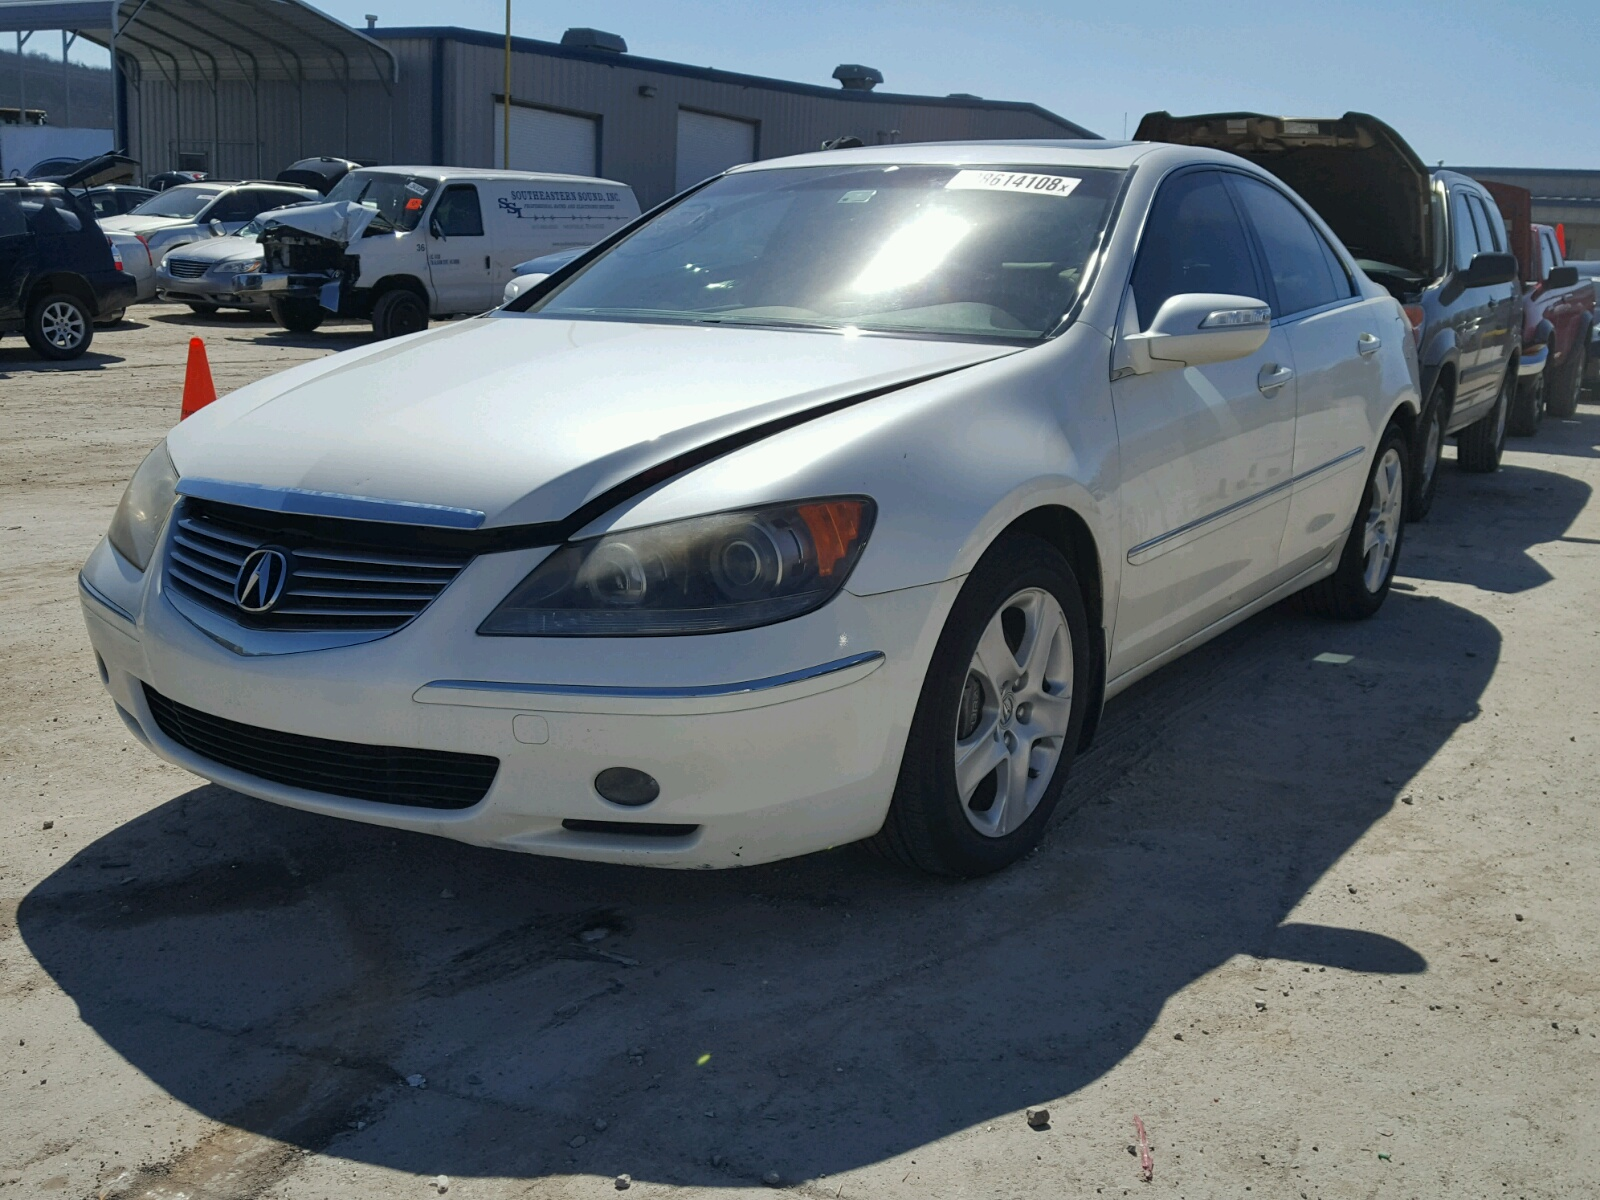 vin auctions en auto in online salvage ended acura of lot title raleigh certificate carfinder auction sale nc for on copart rl